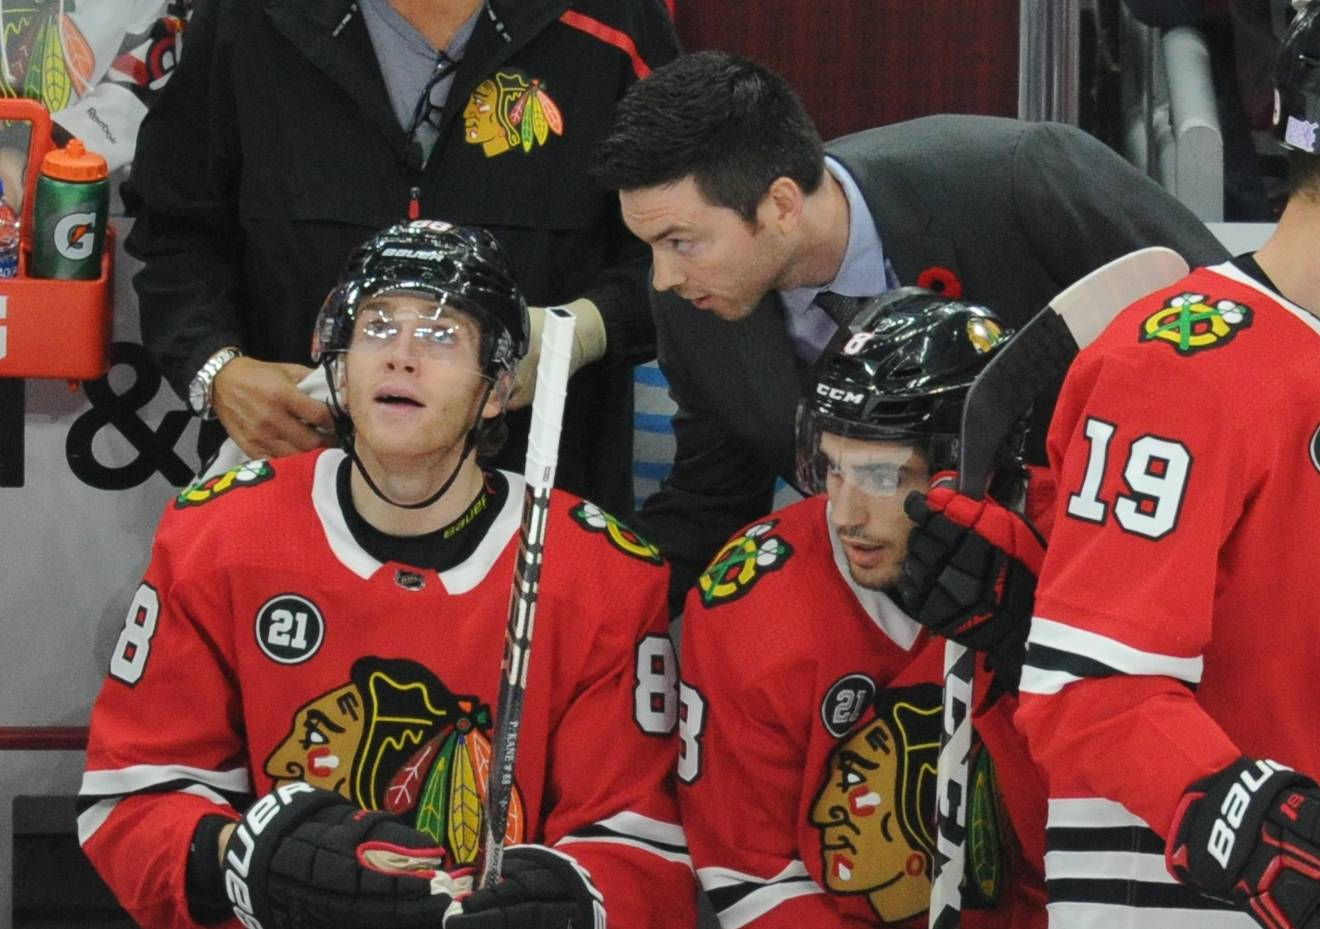 Chicago Blackhawks head coach Jeremy Colliton gives advice to his players.